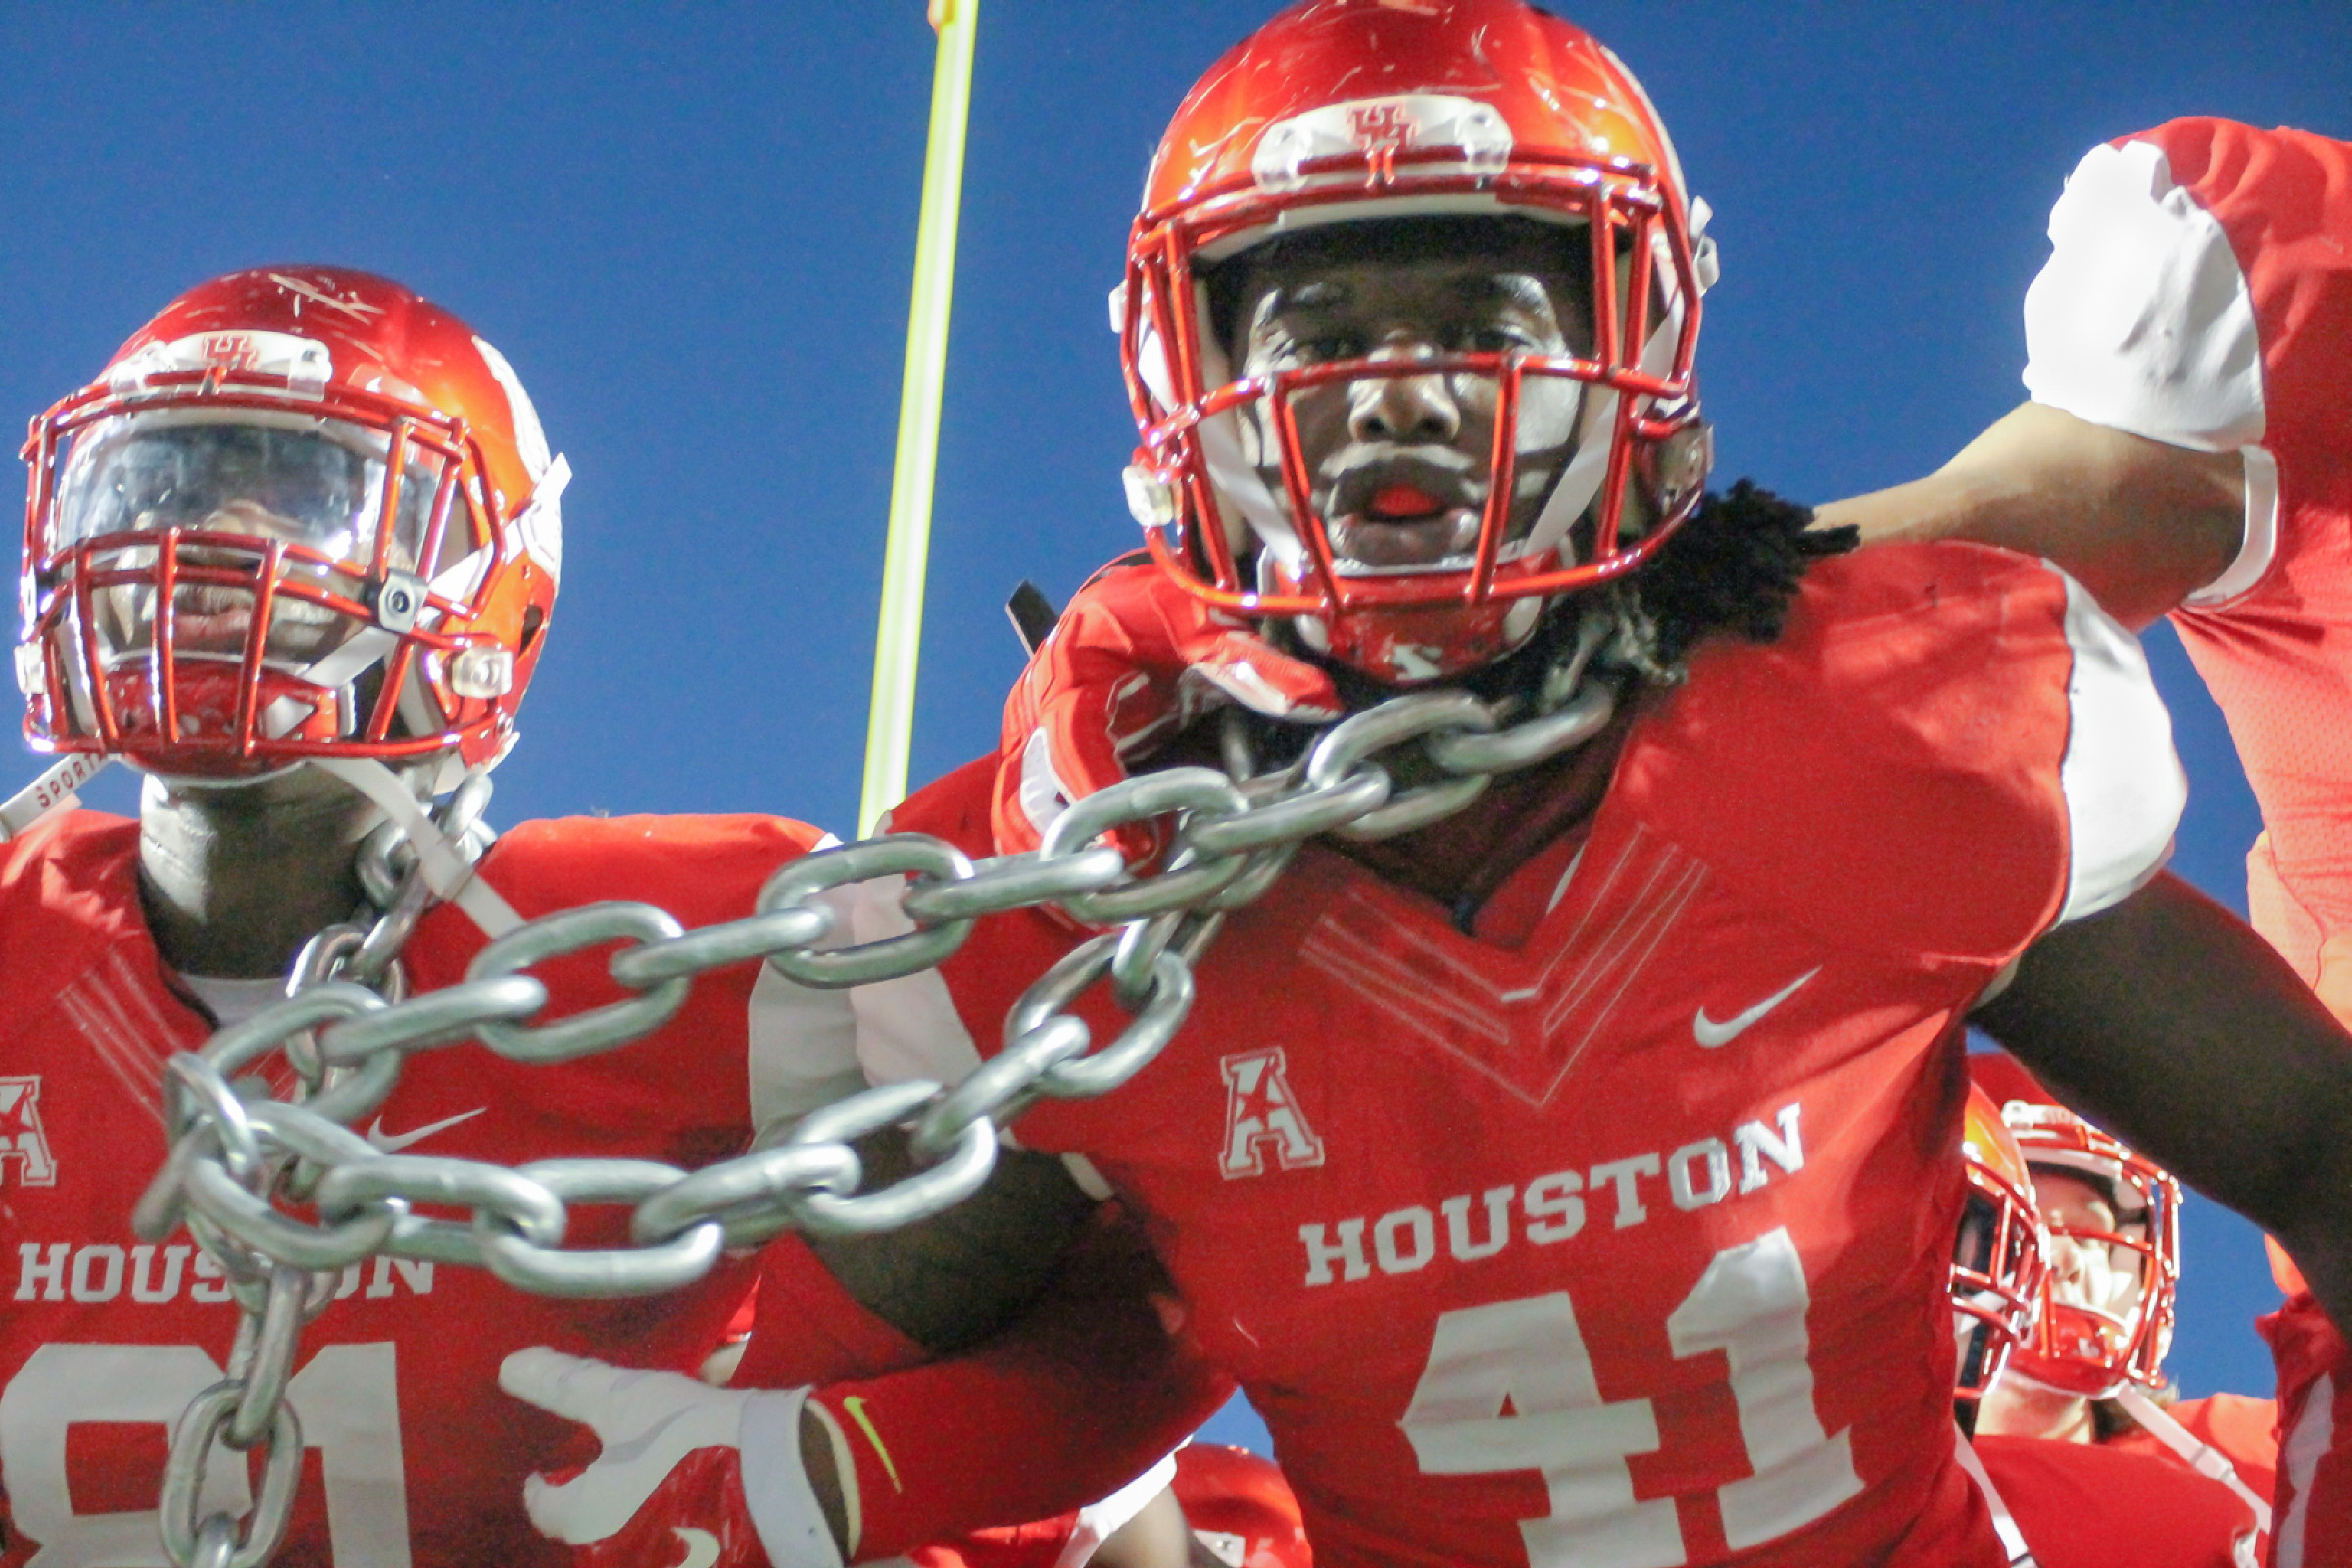 UH Football: University of Houston vs Memphis (Photo Gallery